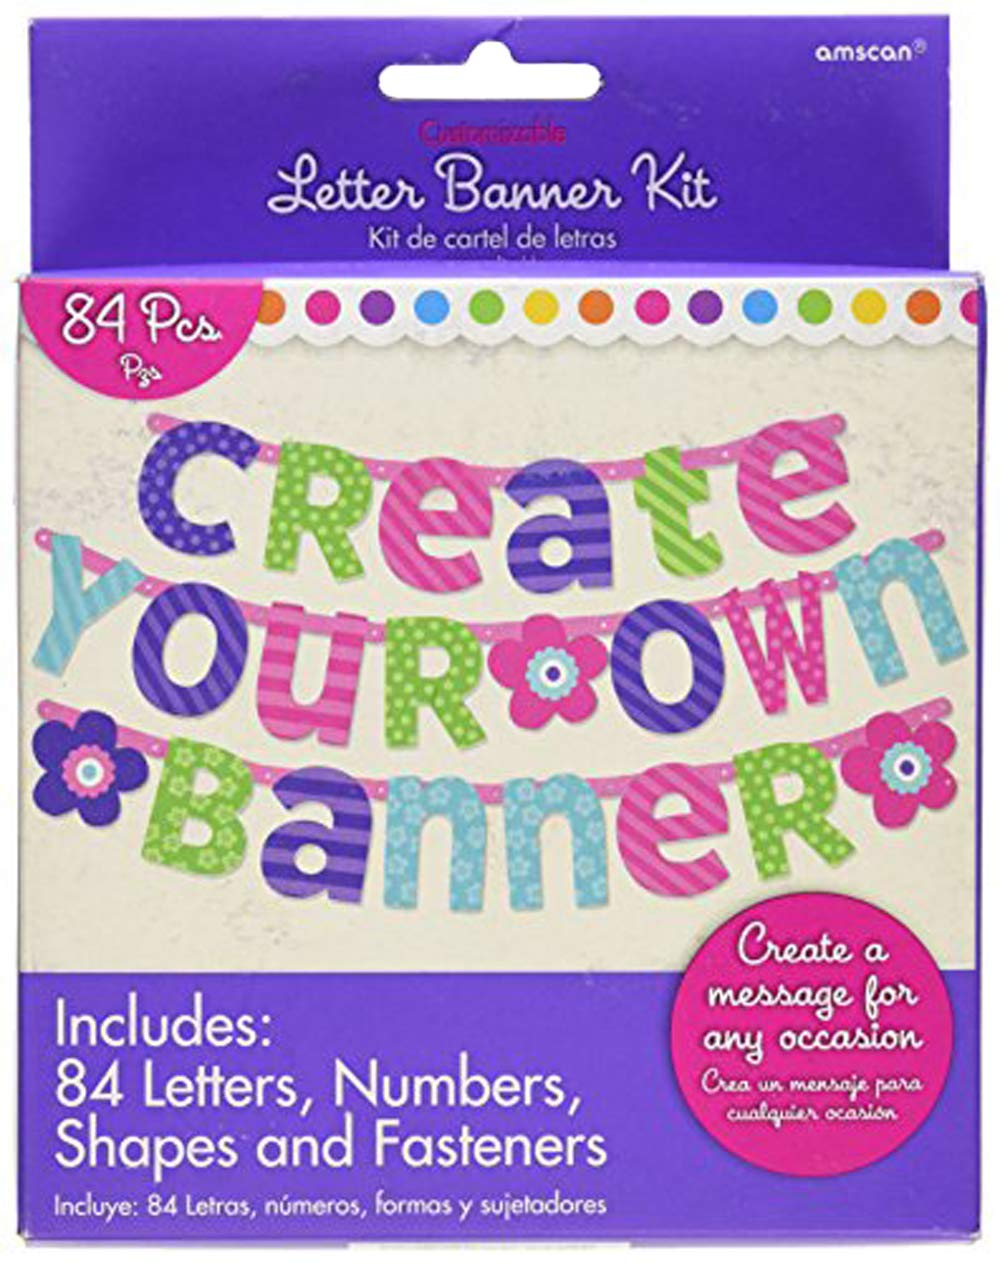 Amscan 120185 Letter Banner One Size Purple and Teal